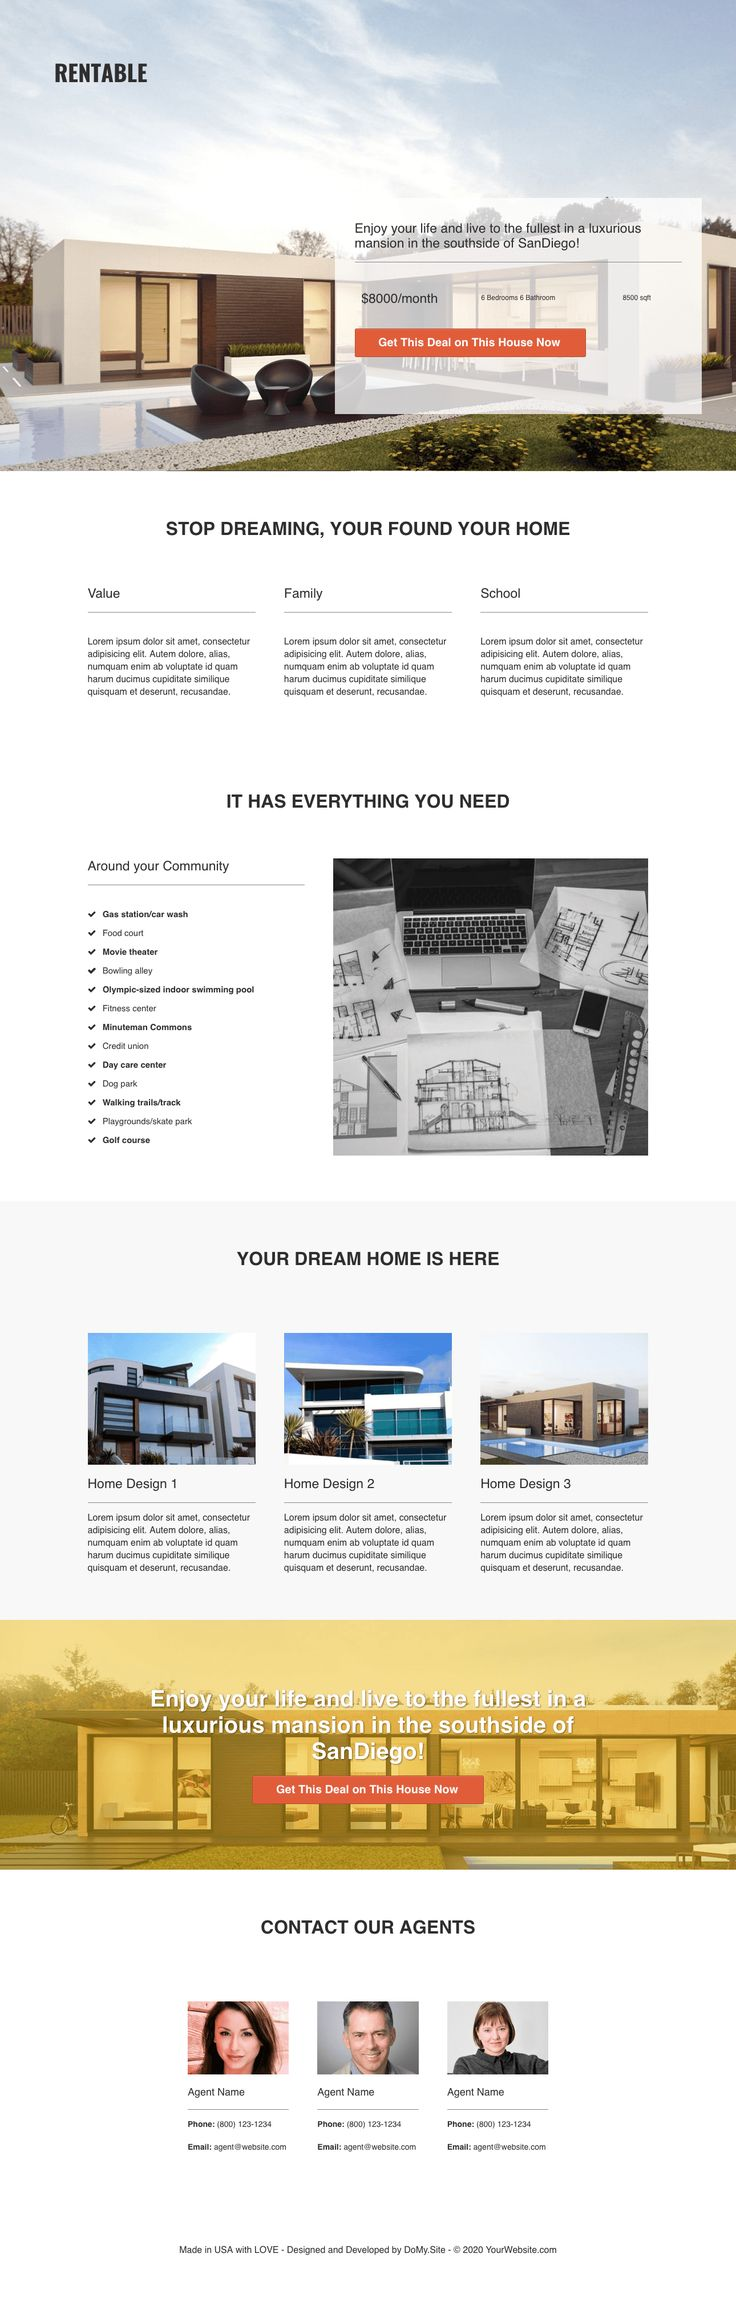 $17   RENTABLE Lead Page Template Premium Clickfunnels Template - Do My Site - https://DoMy.Site